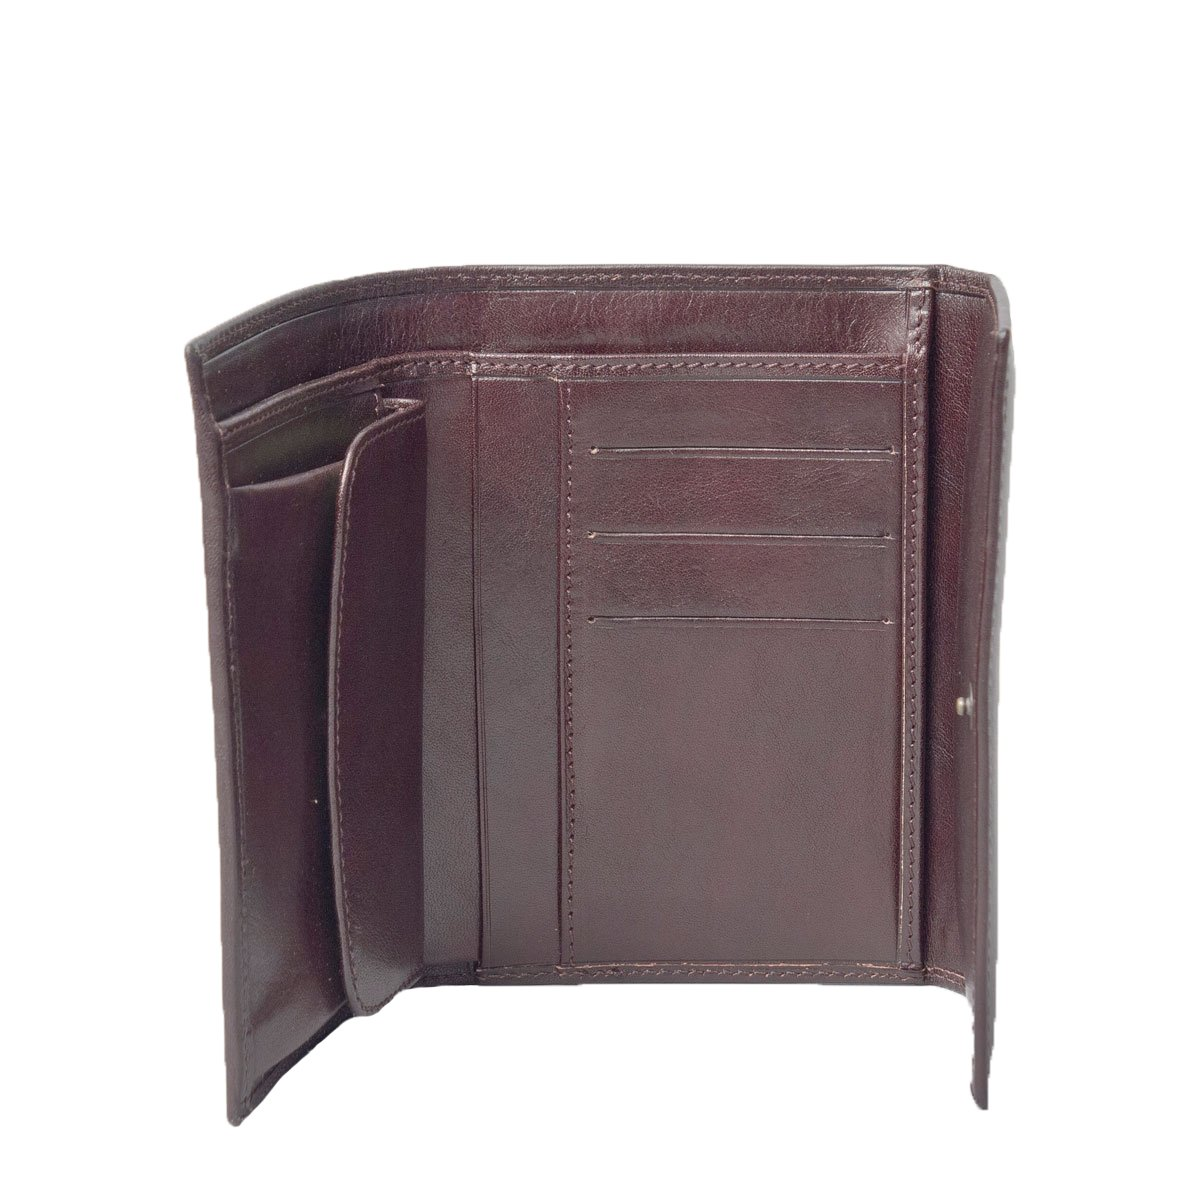 Maxwell Scott Luxury Ladies Wallet with Pocket - One Size (The Pianella) (Dark Chocolate Brown)